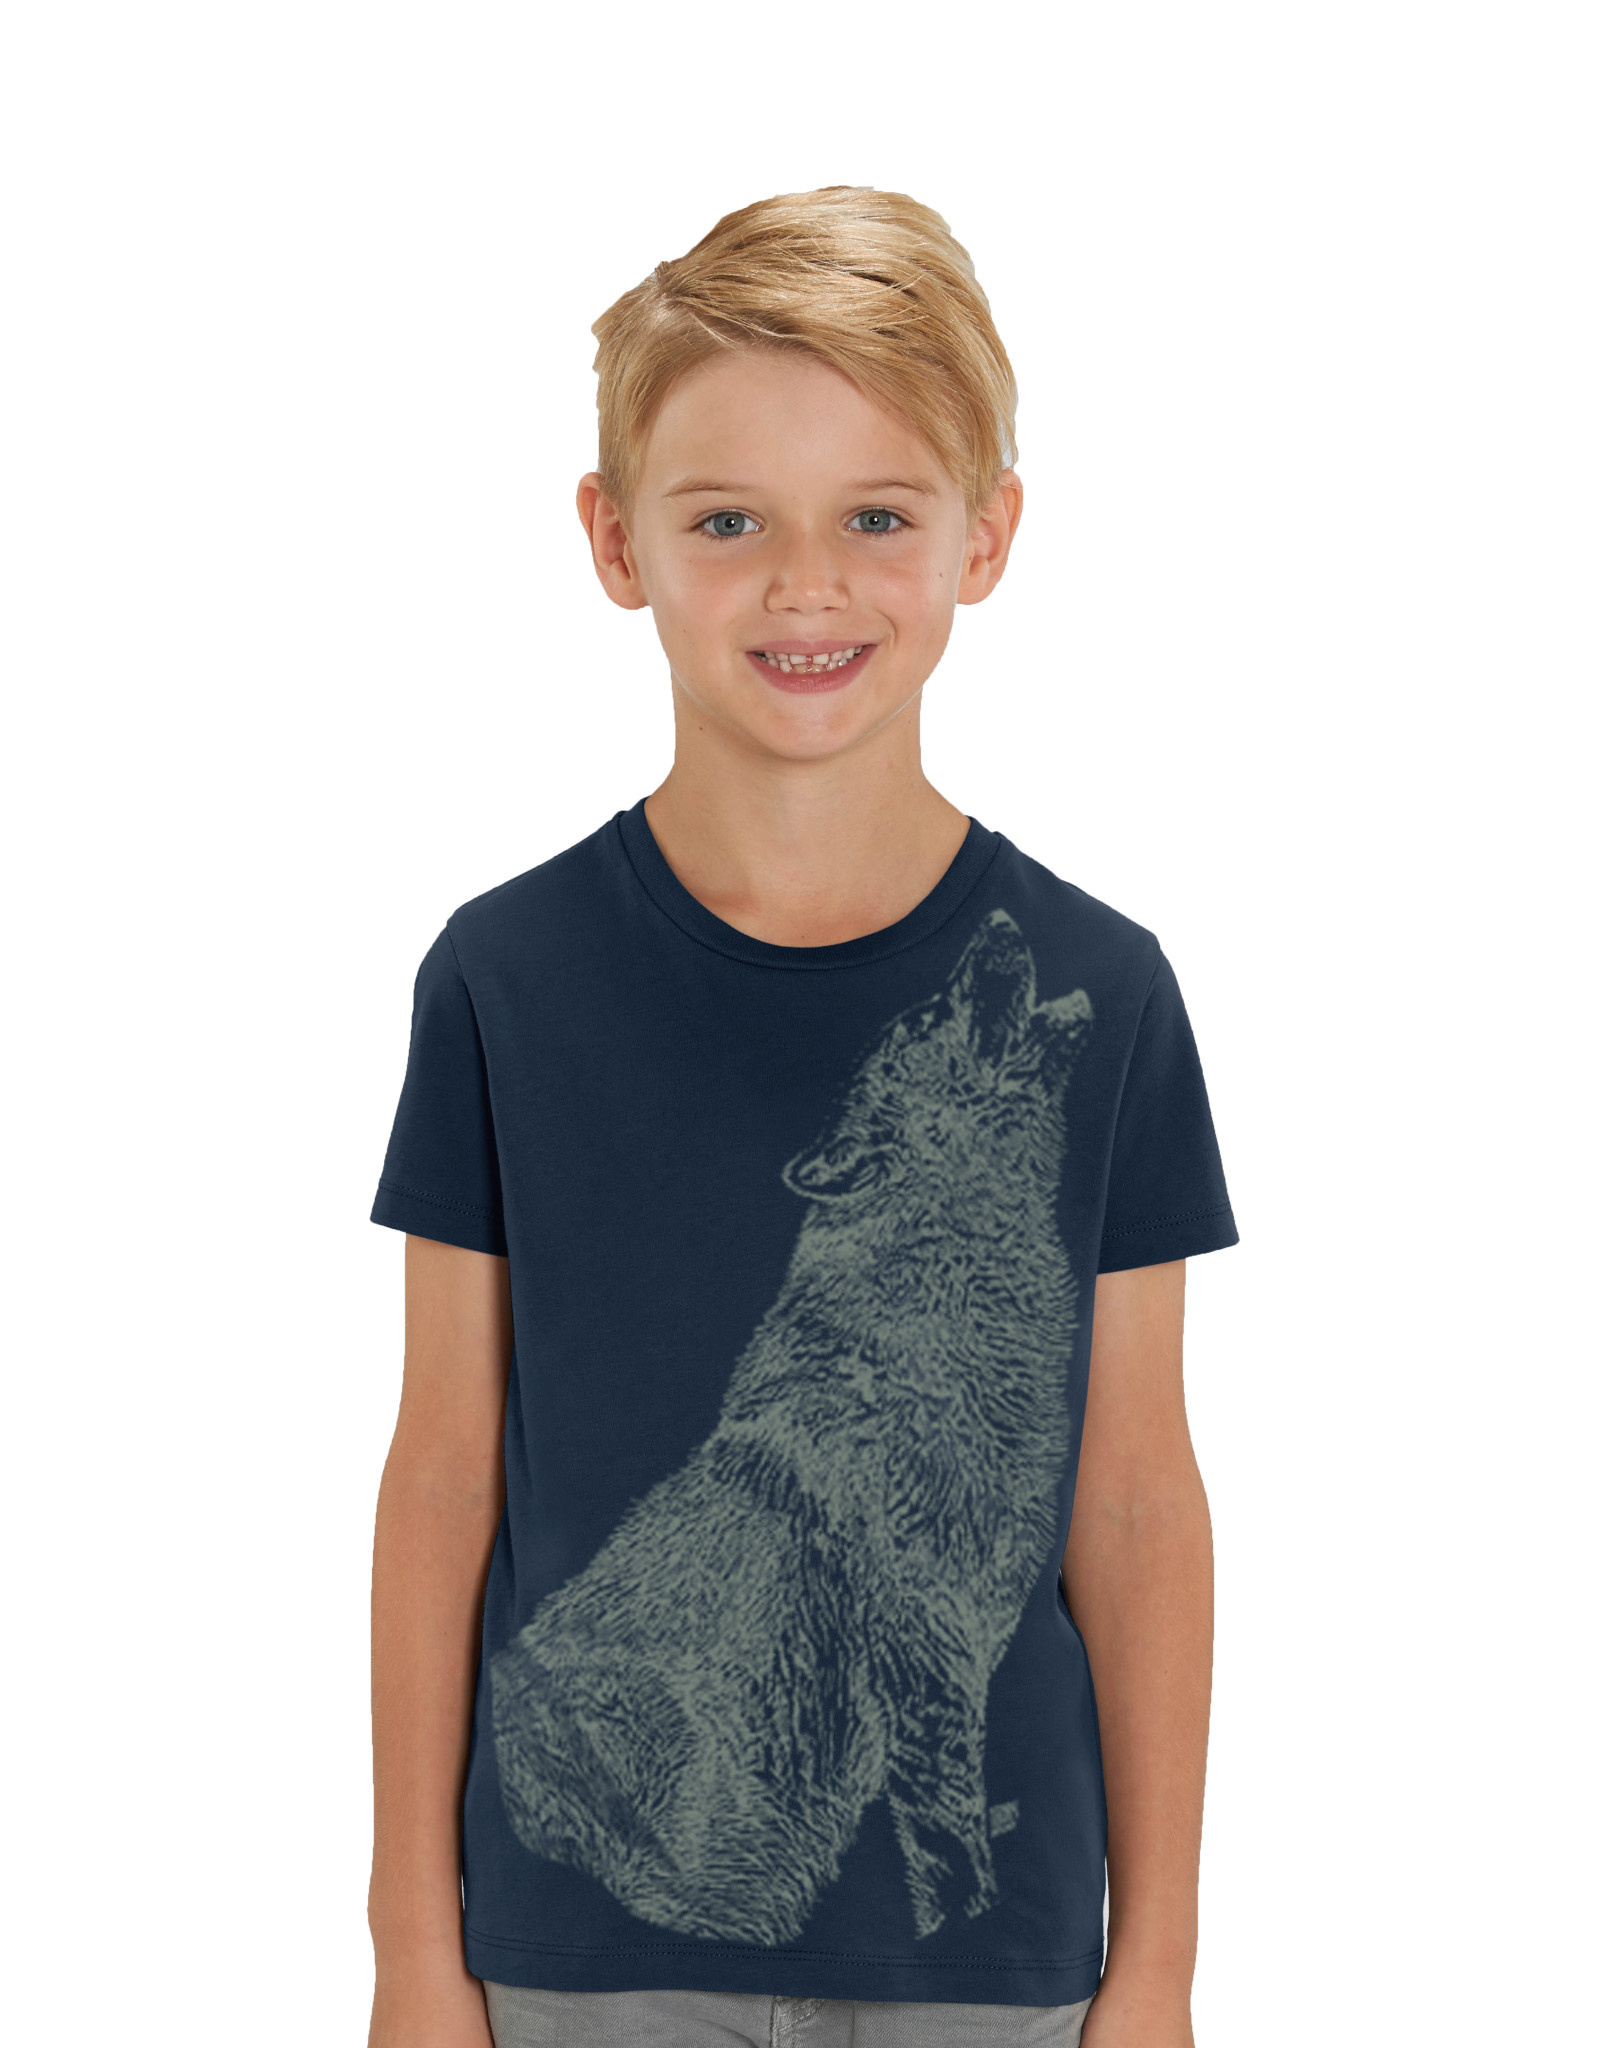 Howling Wolf T-shirt - Glow In the Dark